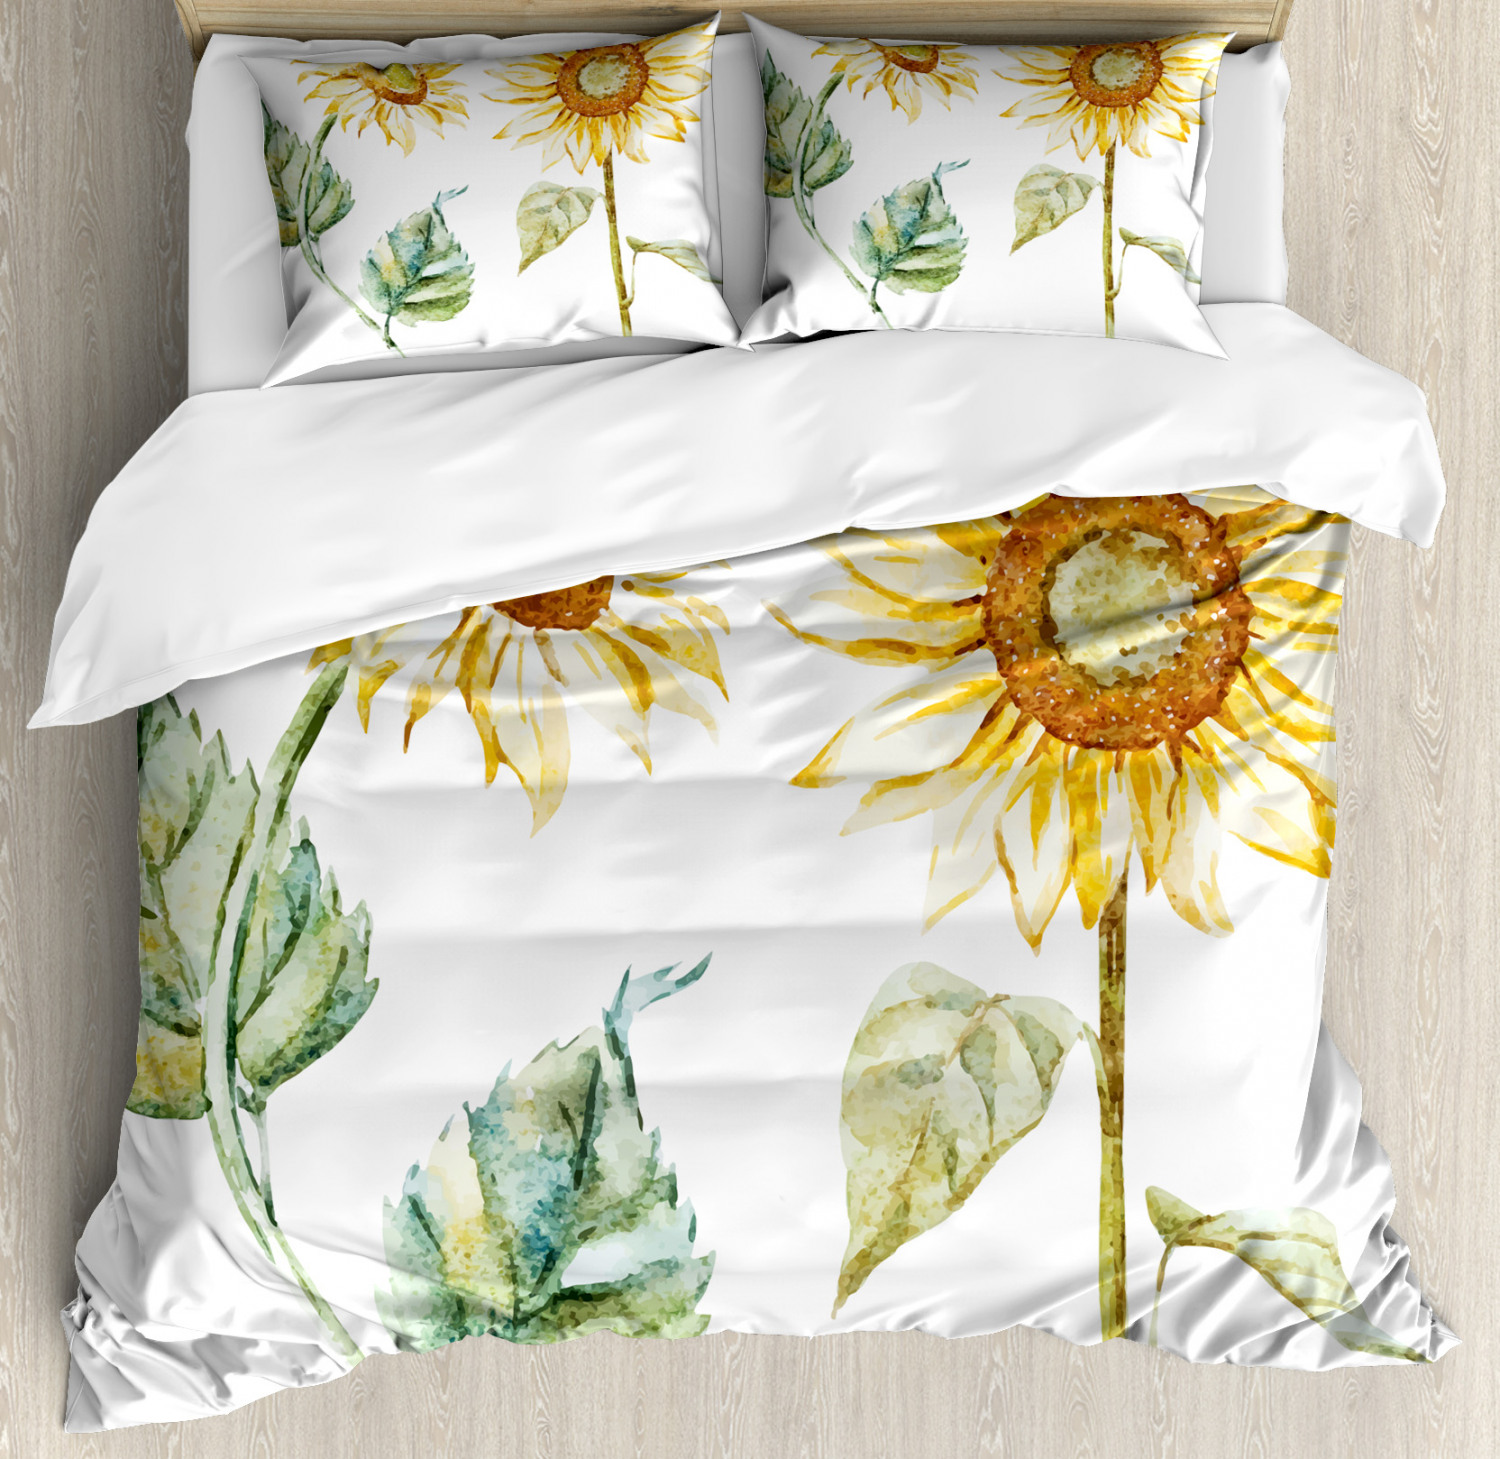 WaterColoreee Duvet Cover Set with Pillow Shams Alluring Sunflowers Print